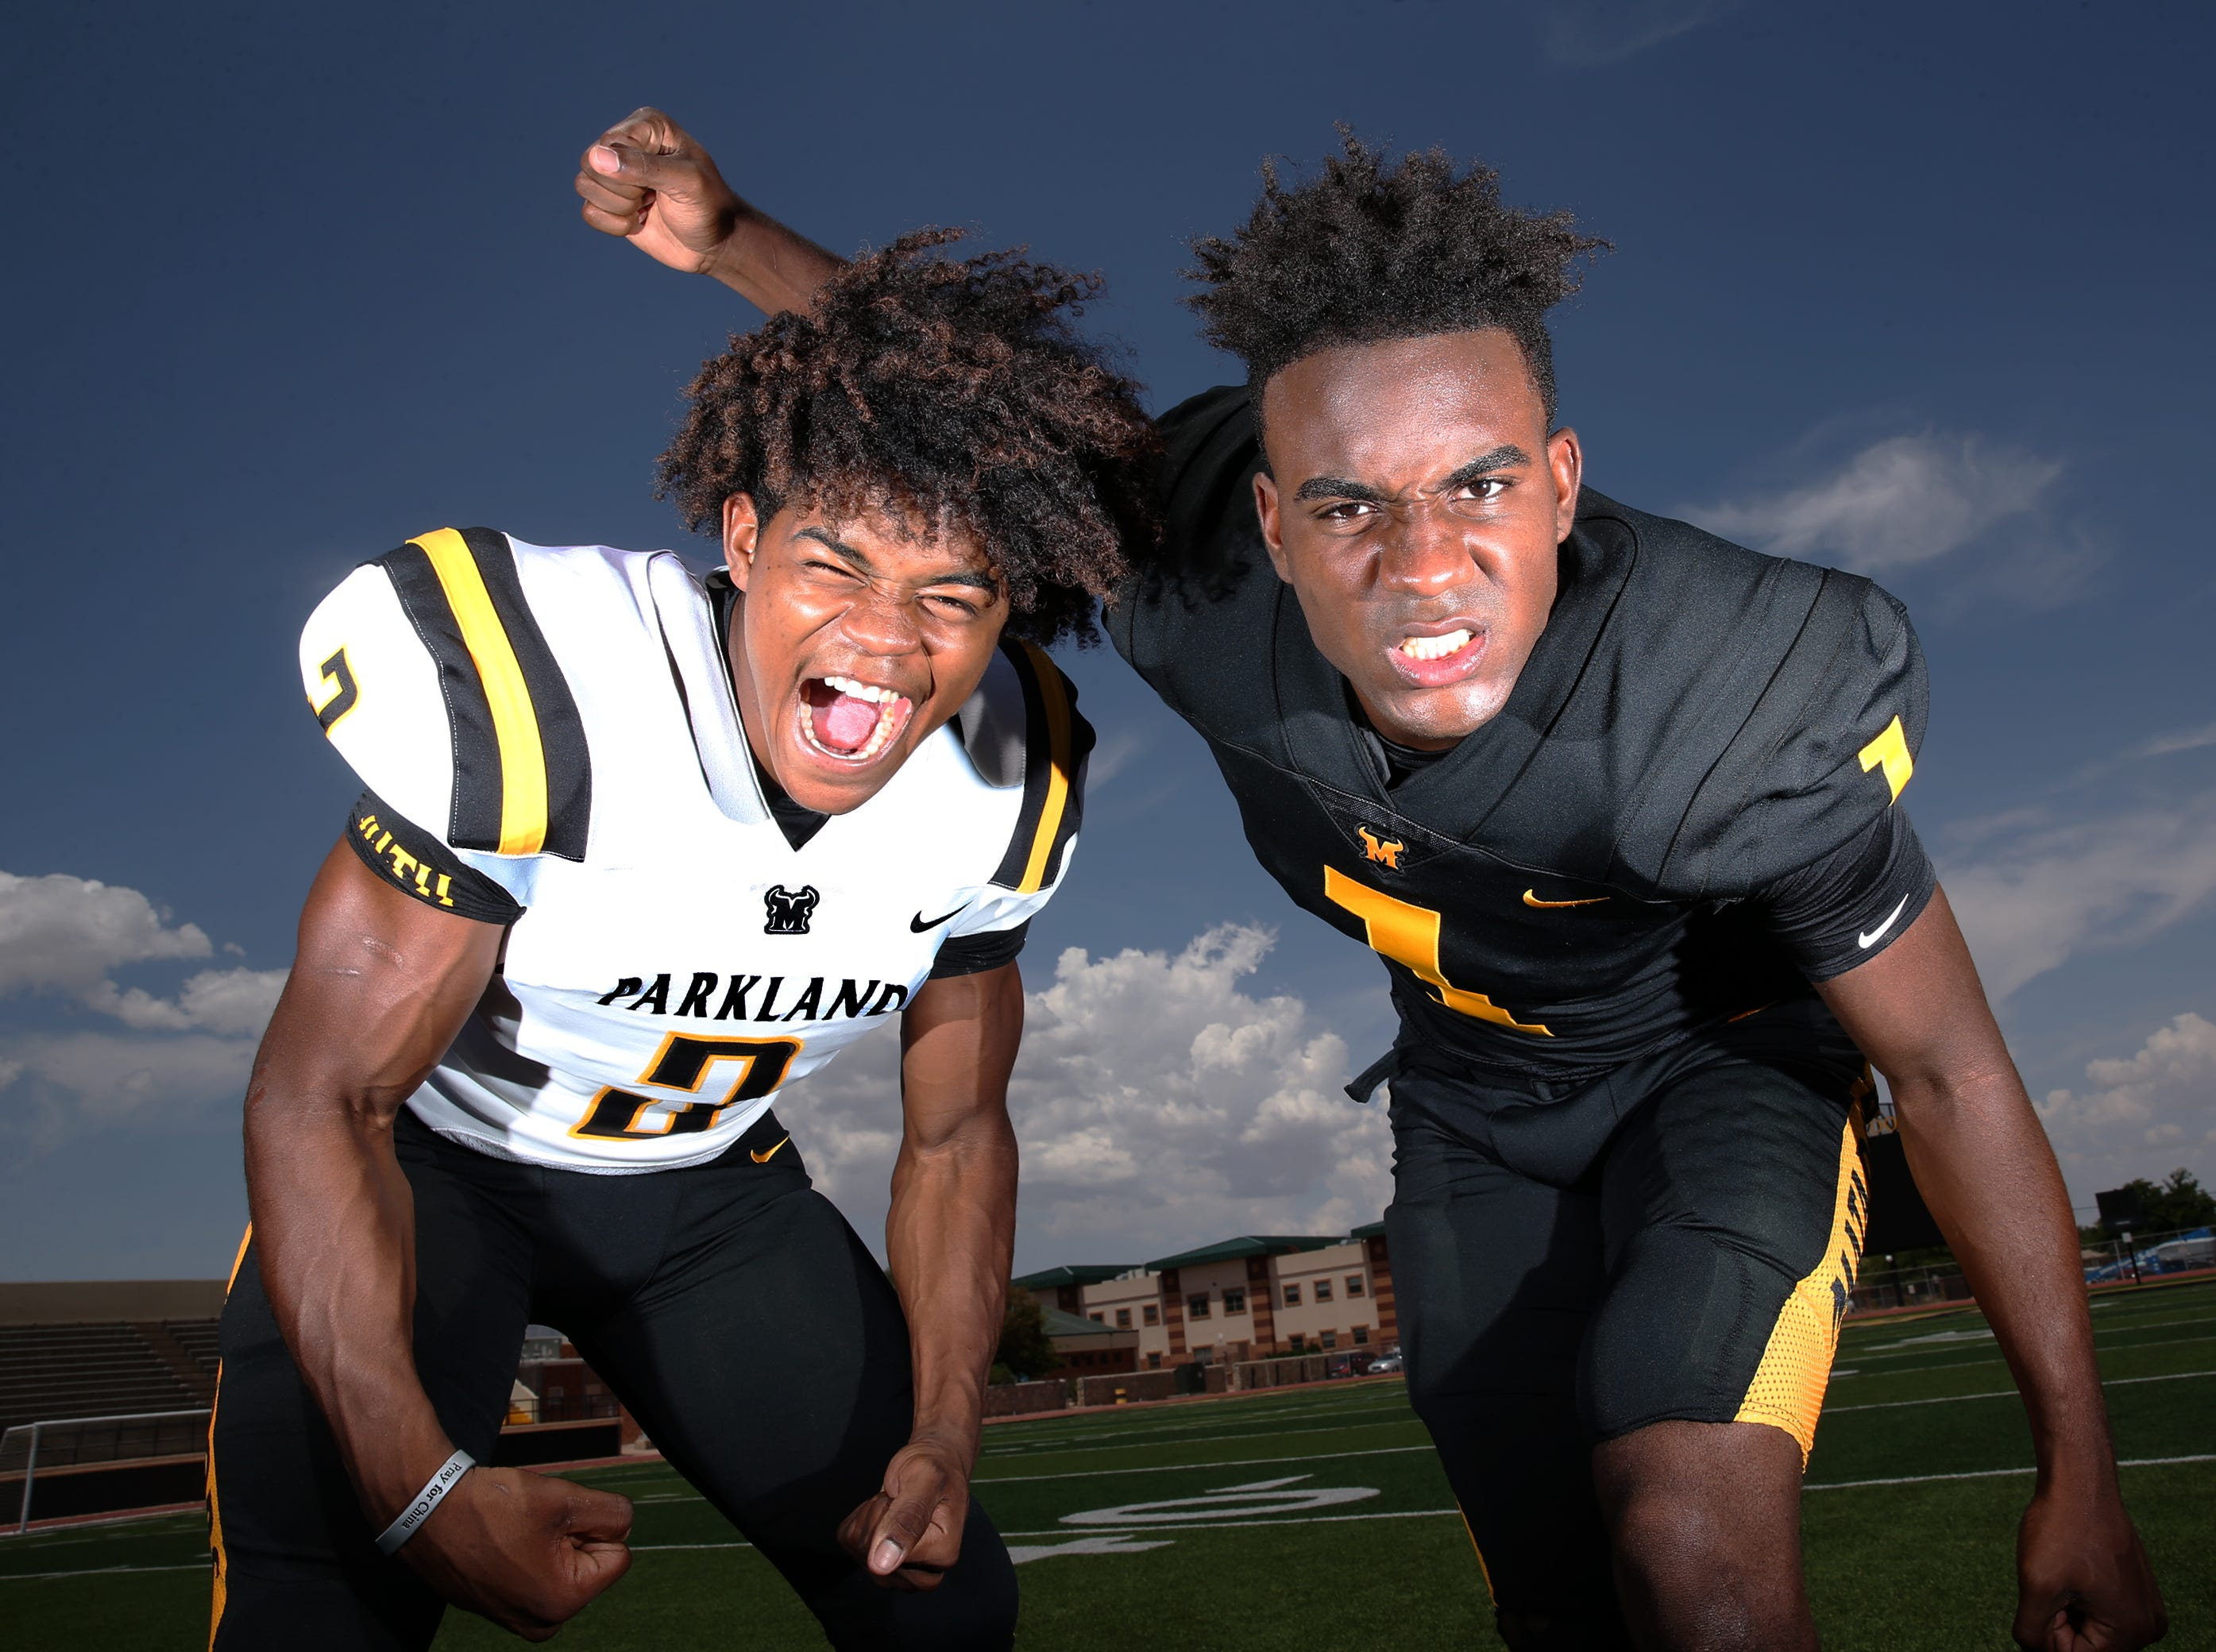 Parkland senior running back Deion Hankins, left, and senior wide receiver Khatib Lyles are two reasons why the Matadores are among the best teams in the city going into the 2018 prep football season.